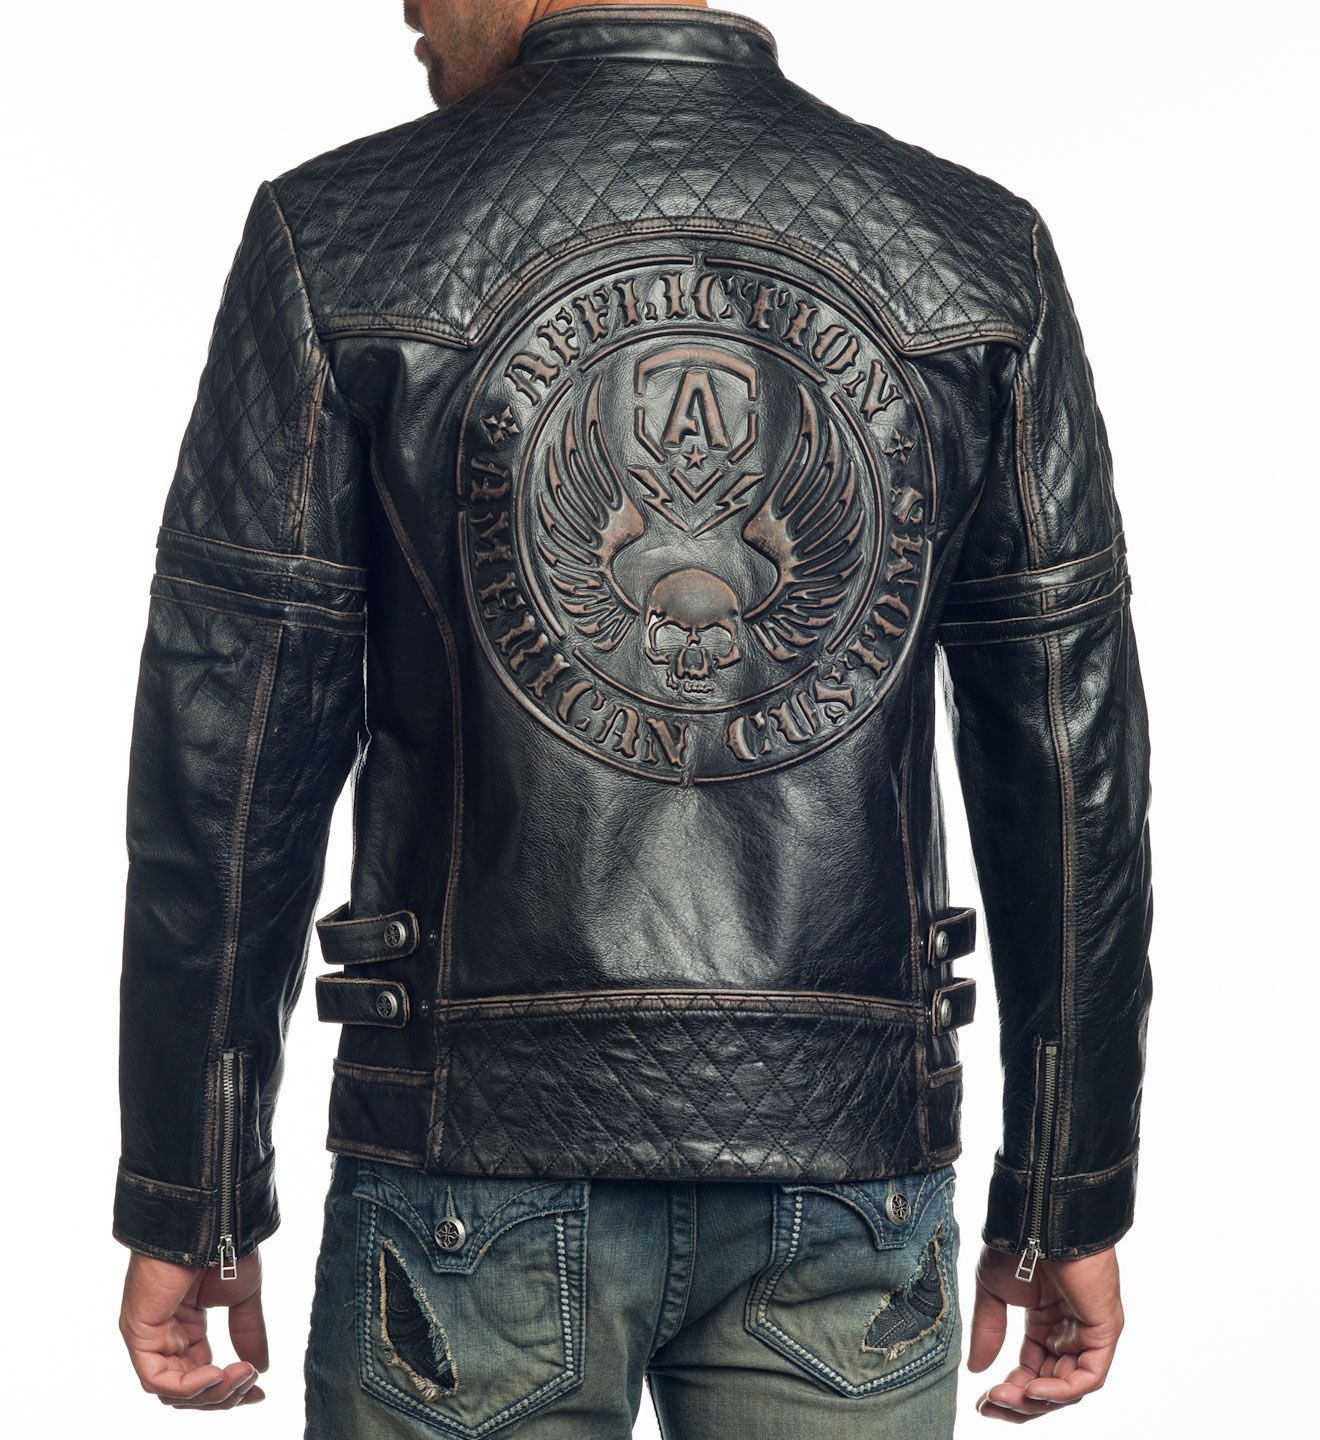 Best leather motorcycle jackets for men